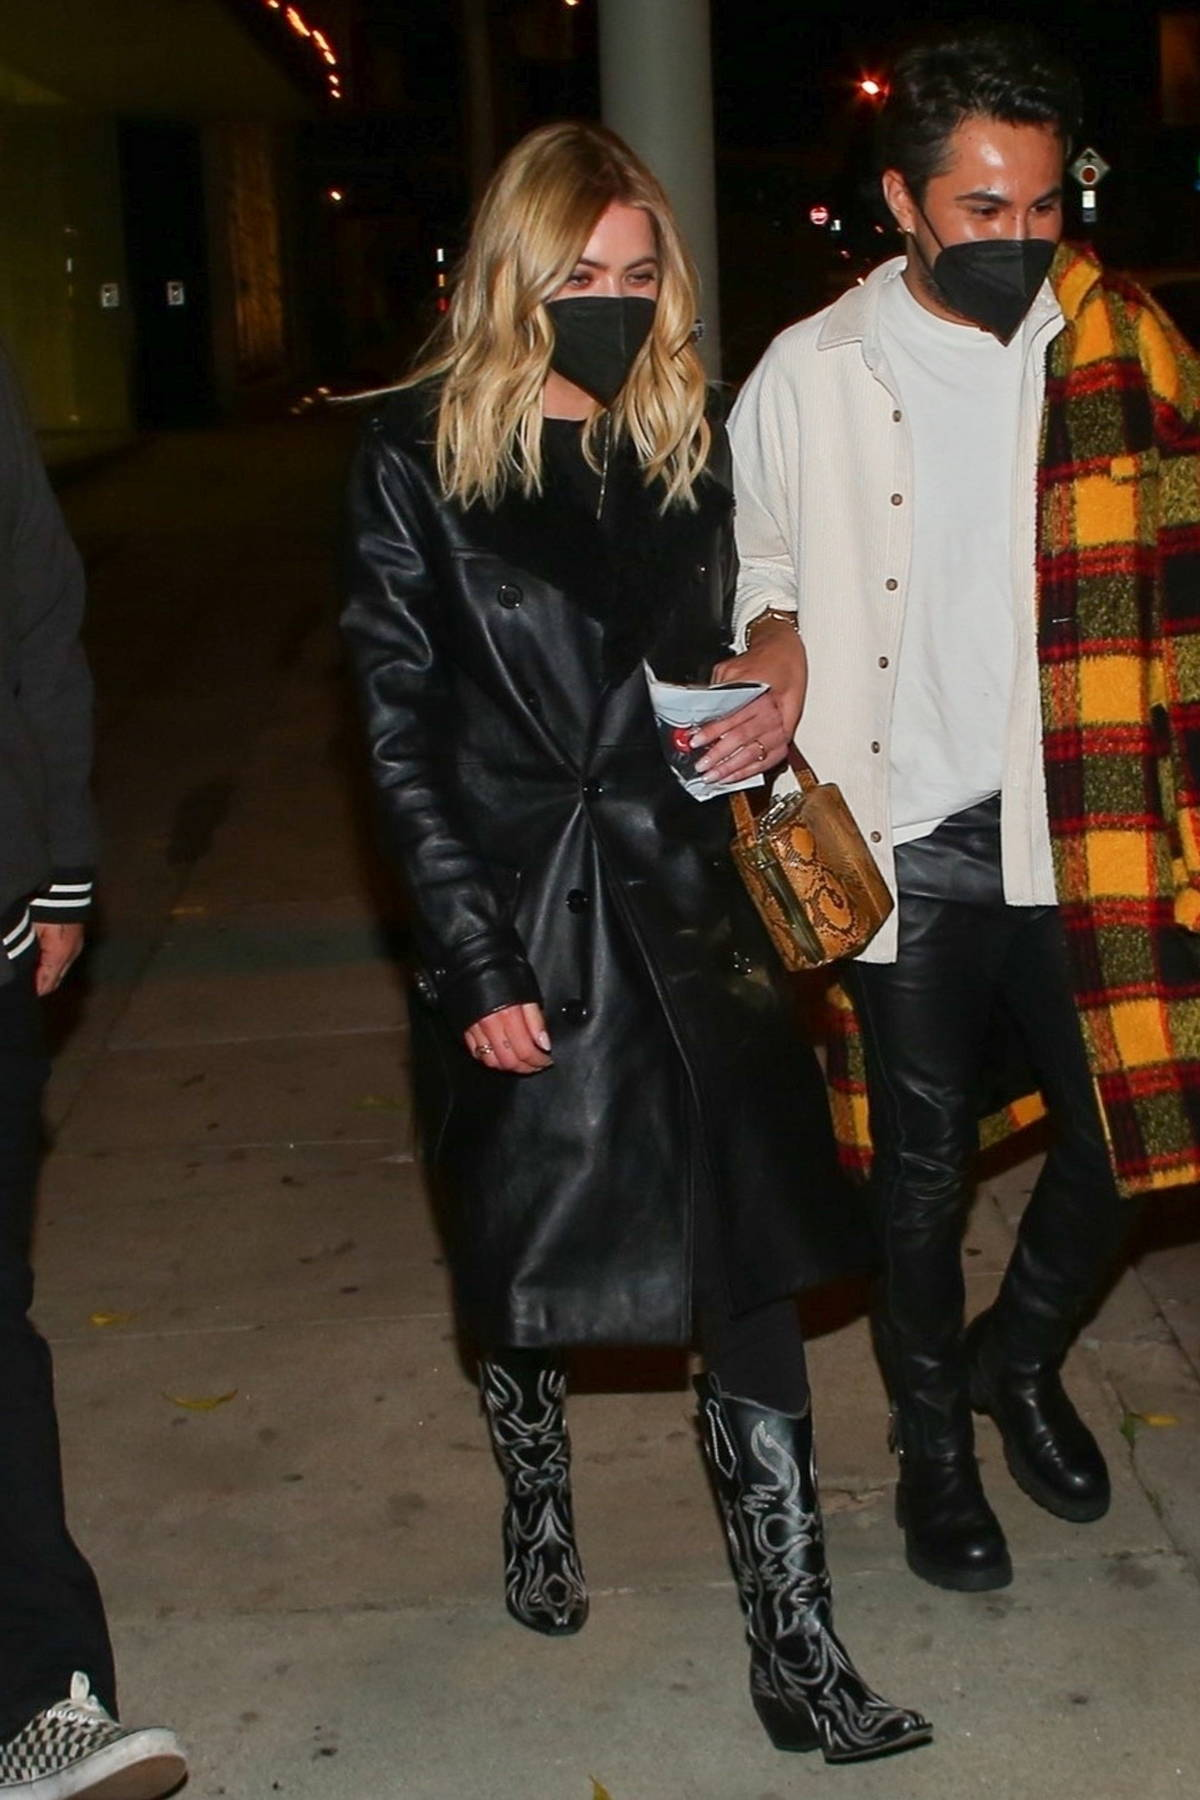 Ashley Benson rocks a leather look for a night out with friends at Craig's in West Hollywood, California